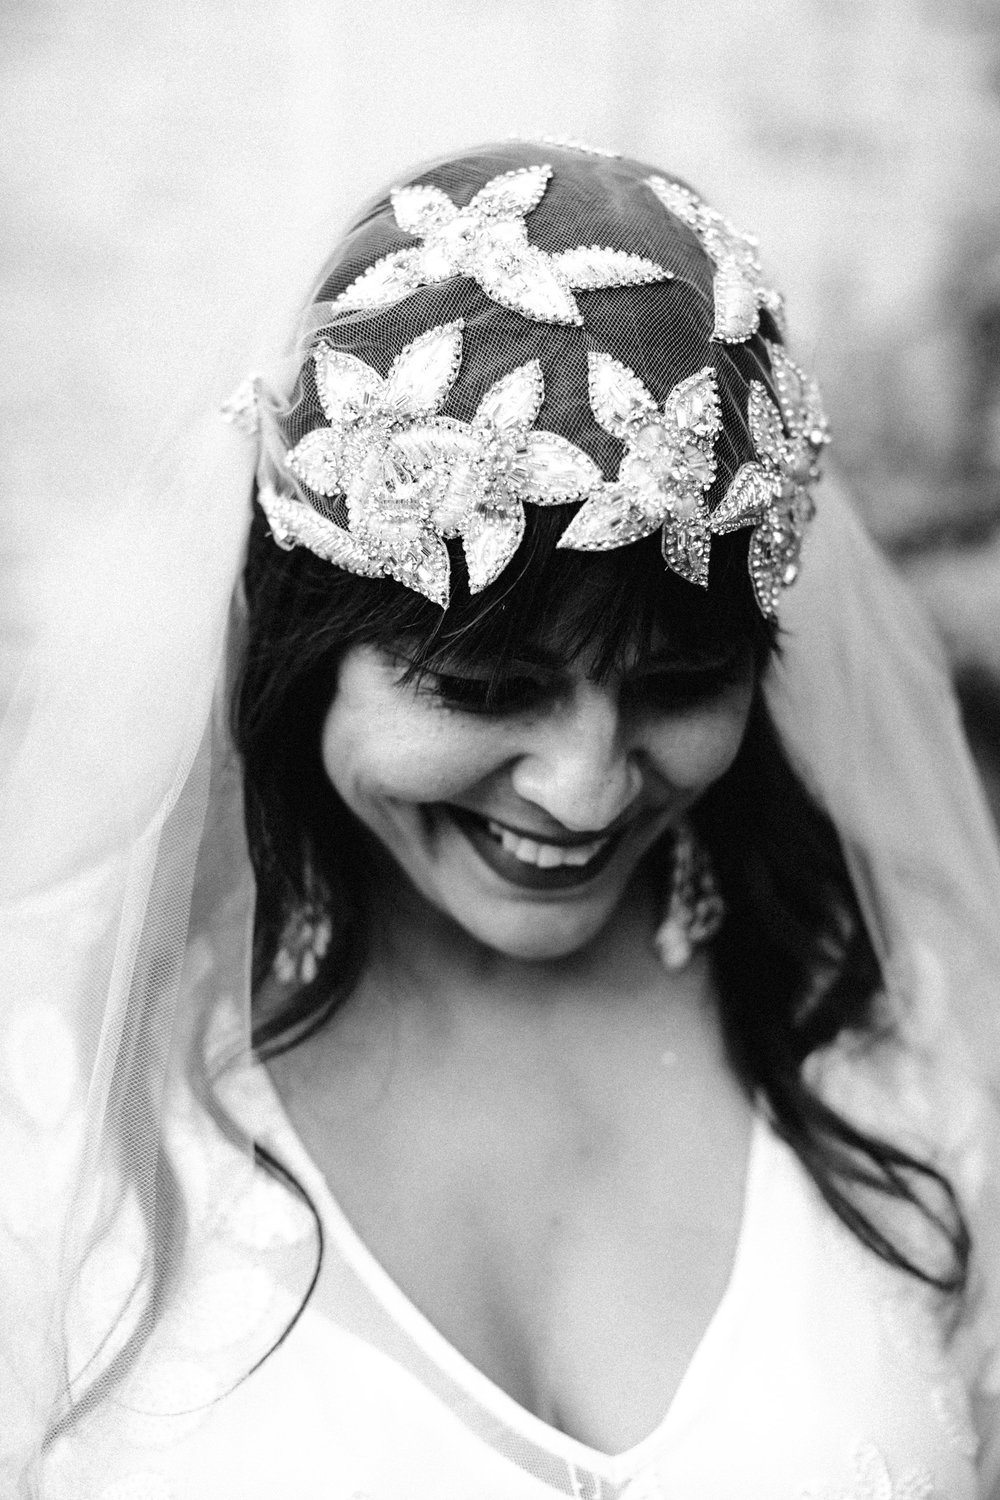 Real Bride wearing Untamed Petals hand beaded Berlin Cap veil